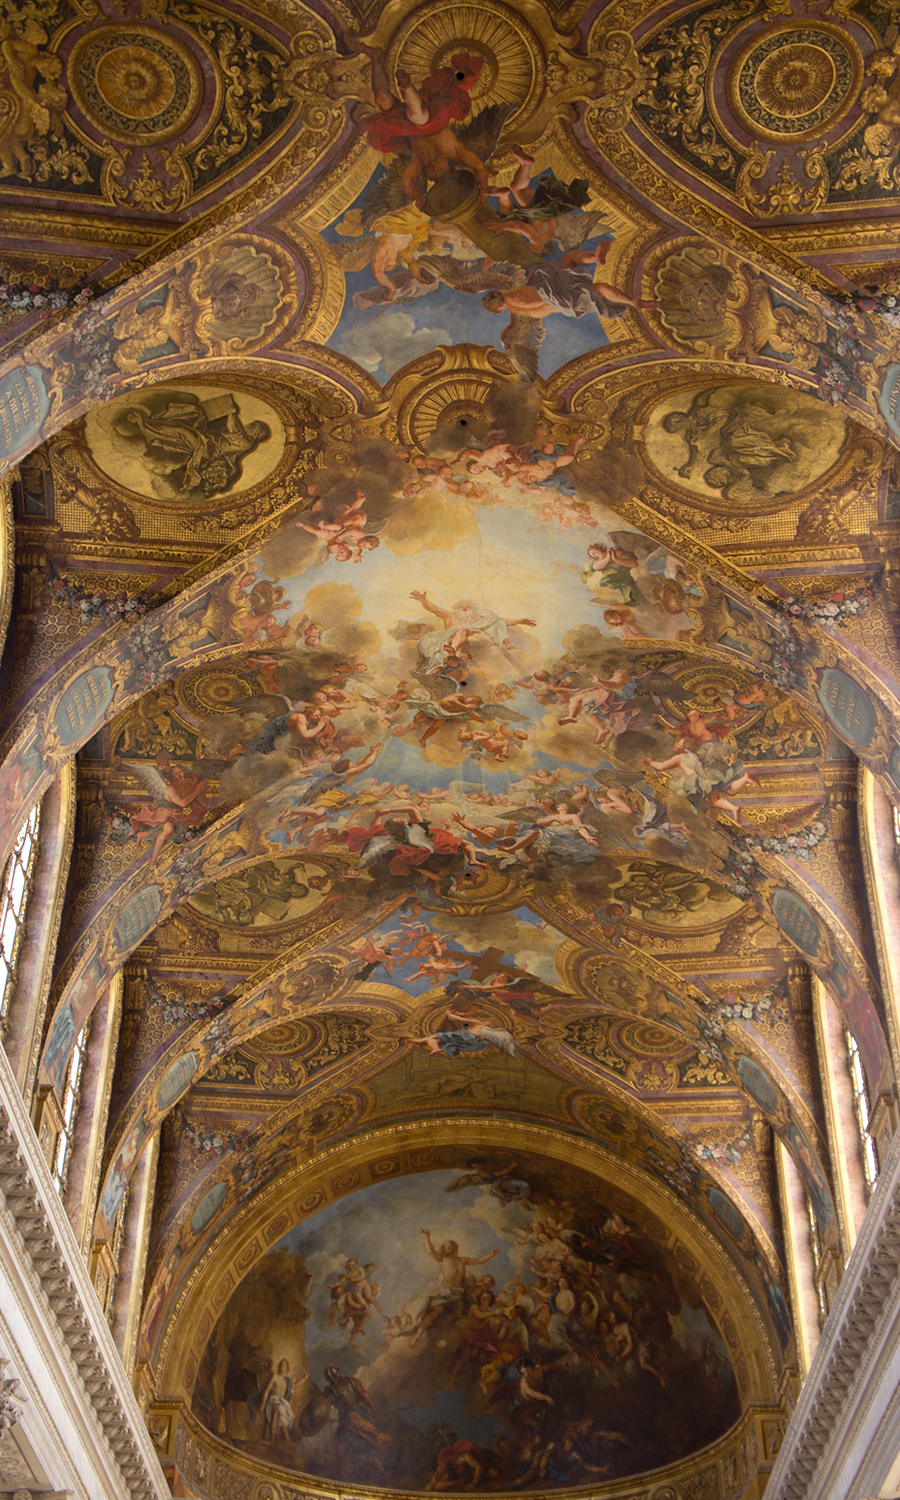 2014-chateau-de-versailles-paris-france-18